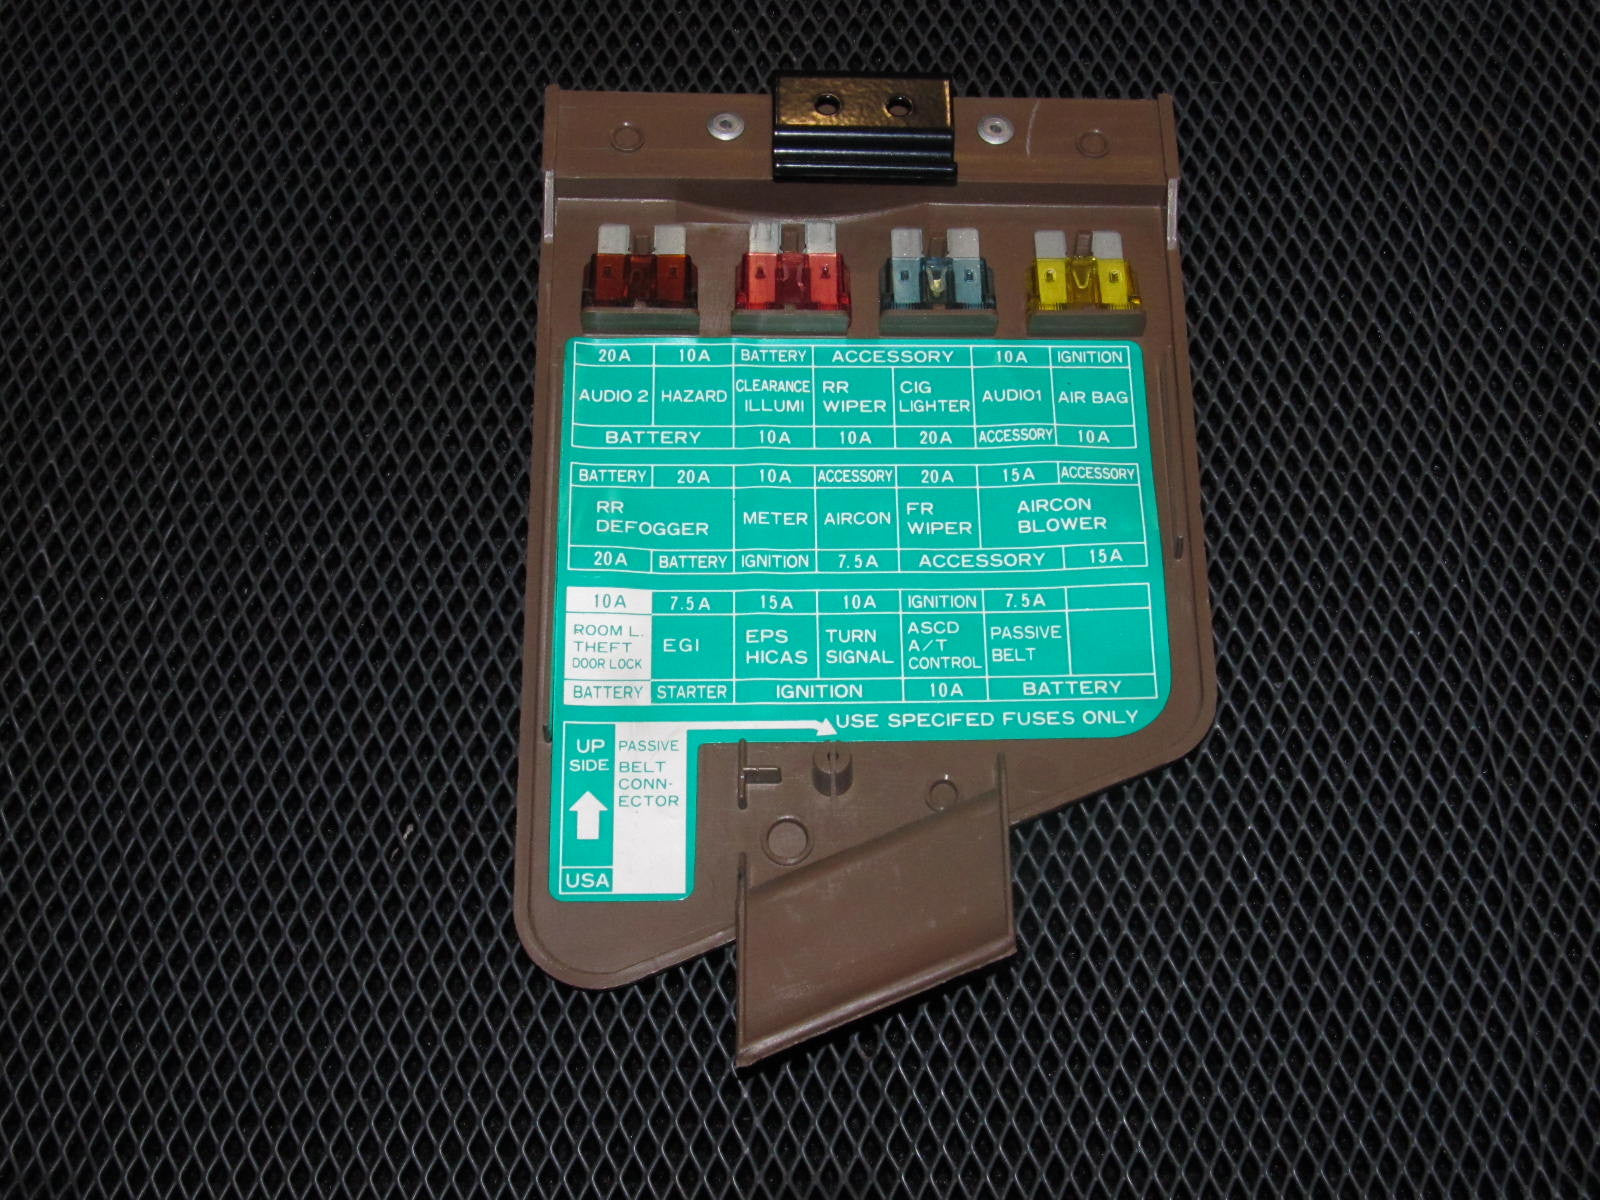 90 96 nissan 300zx oem brown interior fuse box cover autopartone com rh autopartone com 1991 nissan 300zx fuse box diagram nissan 300zx fuse box relocation